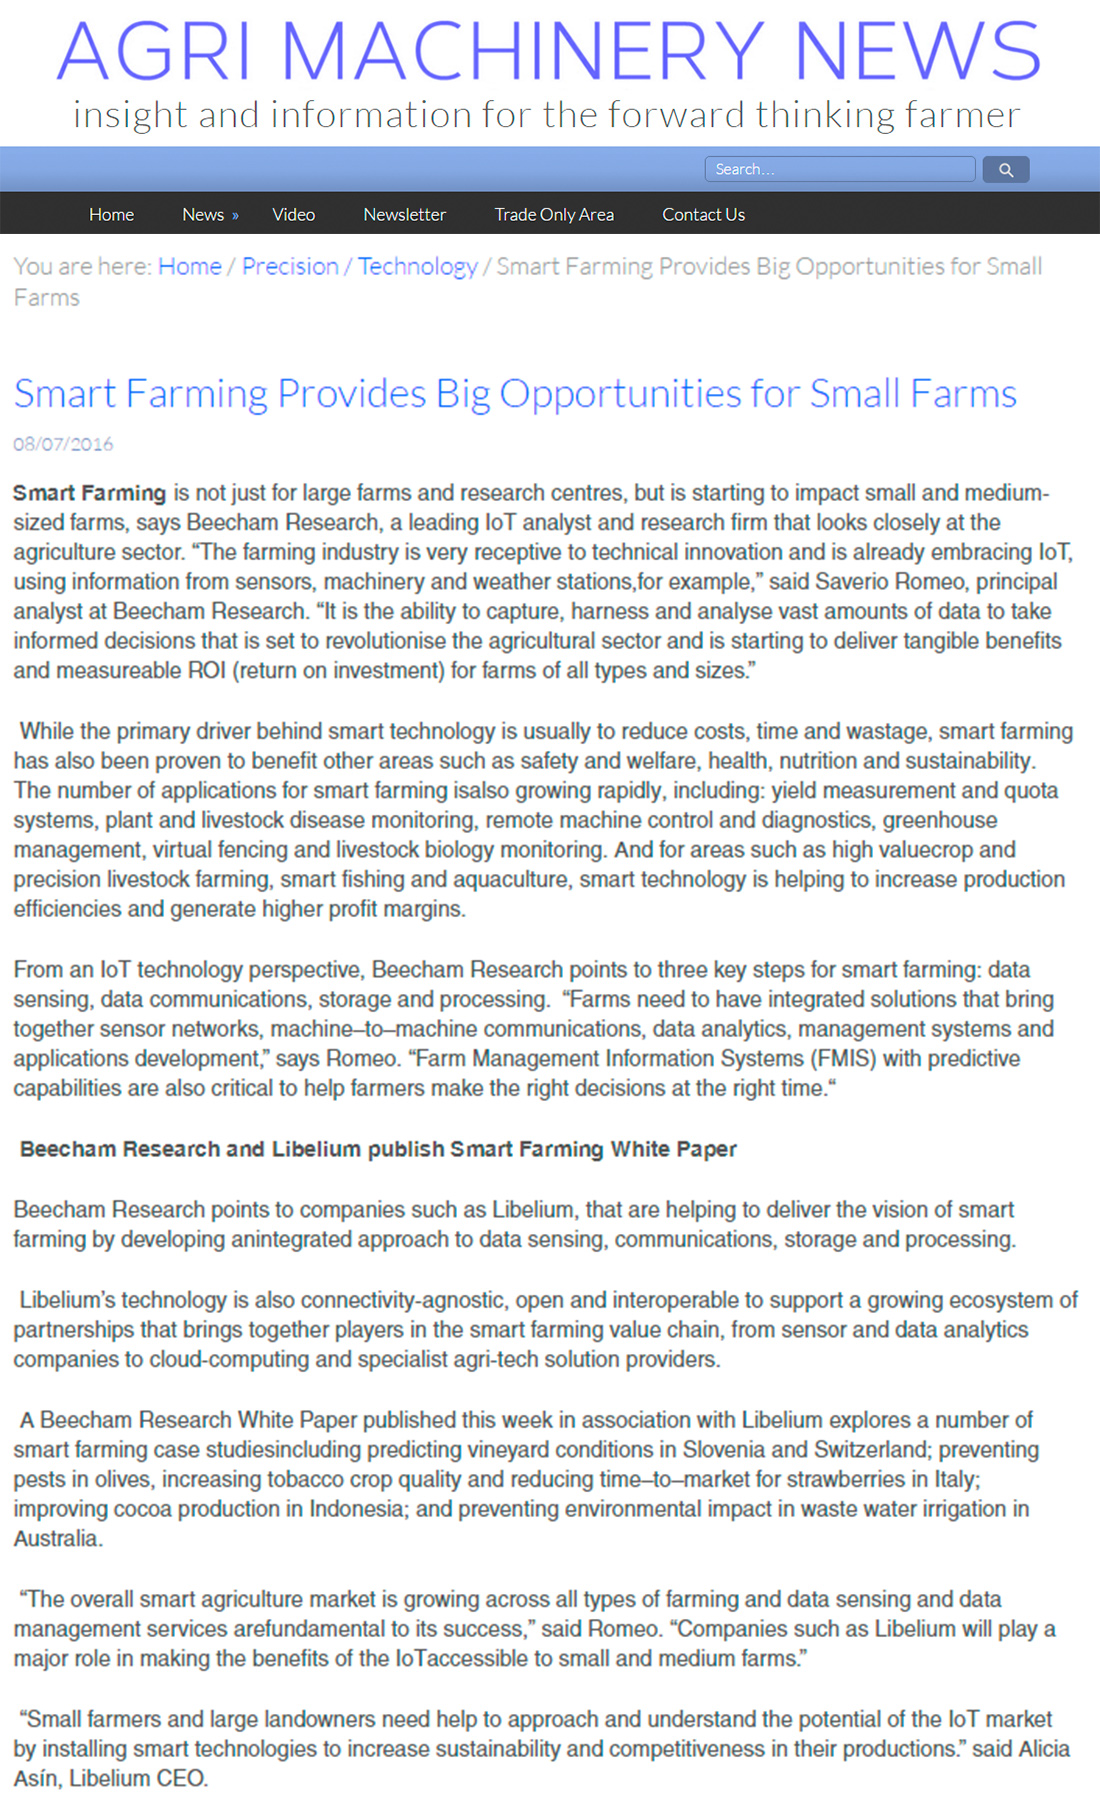 Agri Machinery News – Smart Farming Provides Big Opportunities